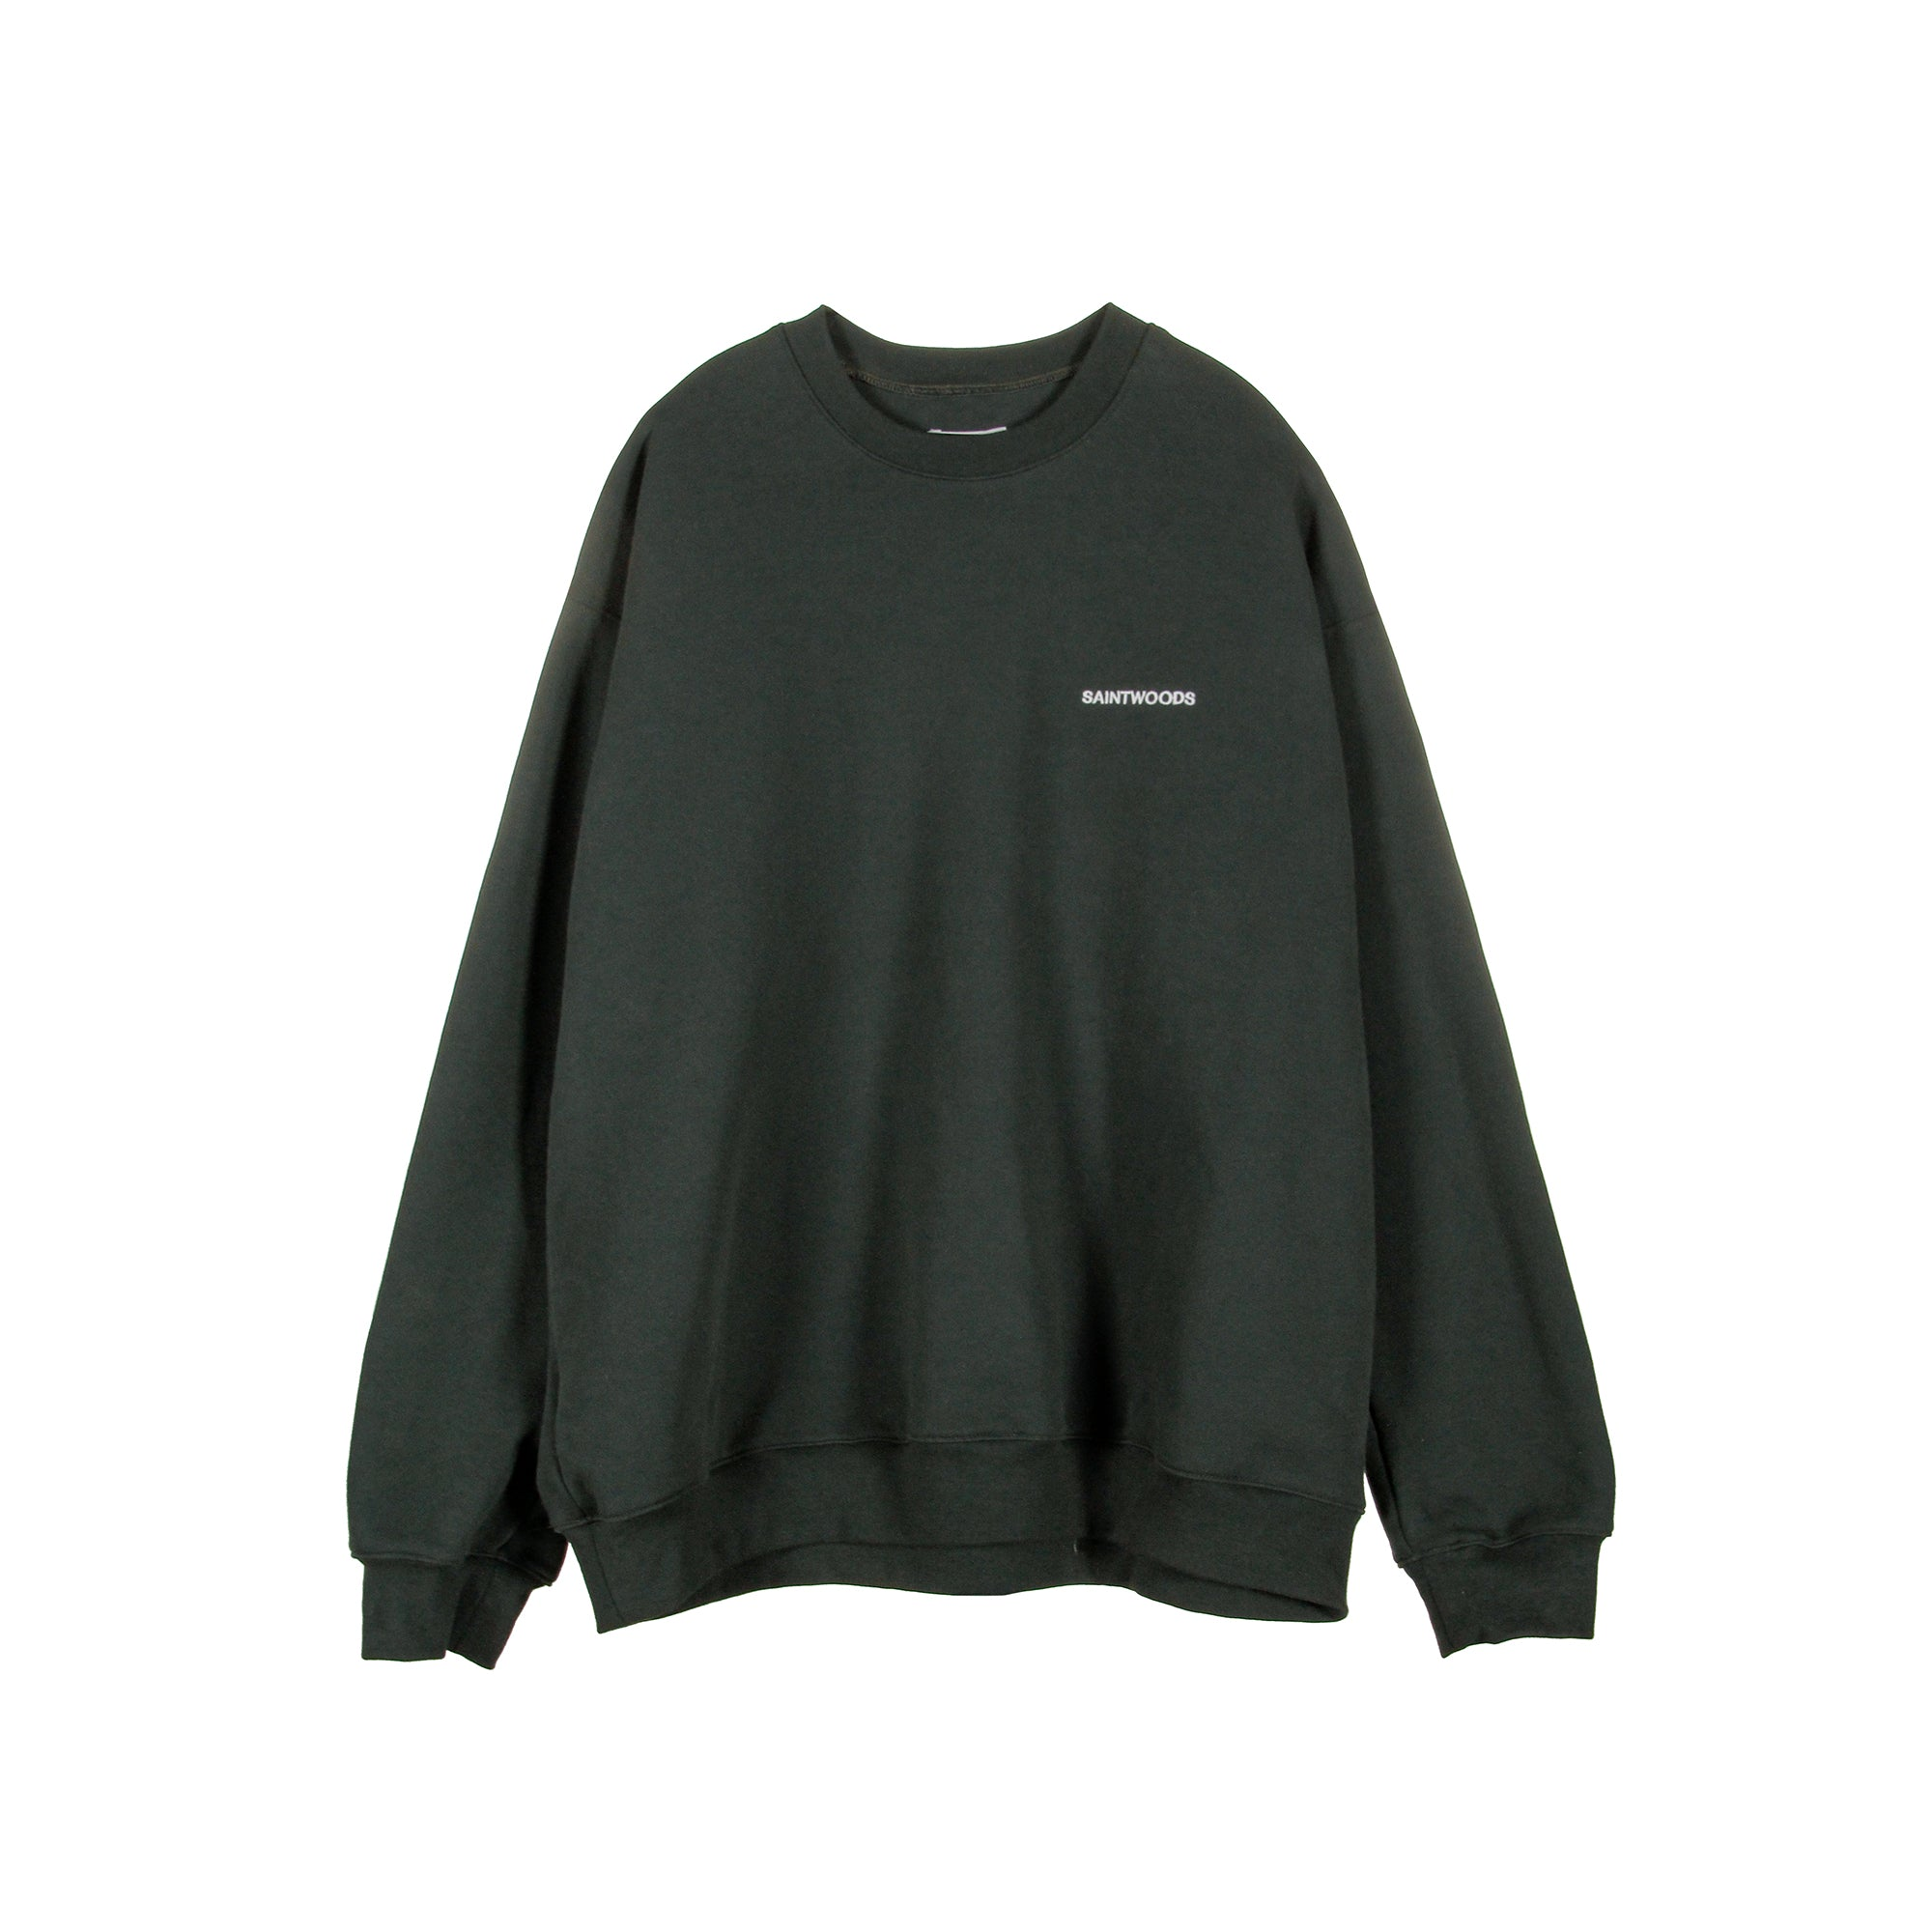 SW Forest Green Sweatshirt - Crewnecks - Saintwoods